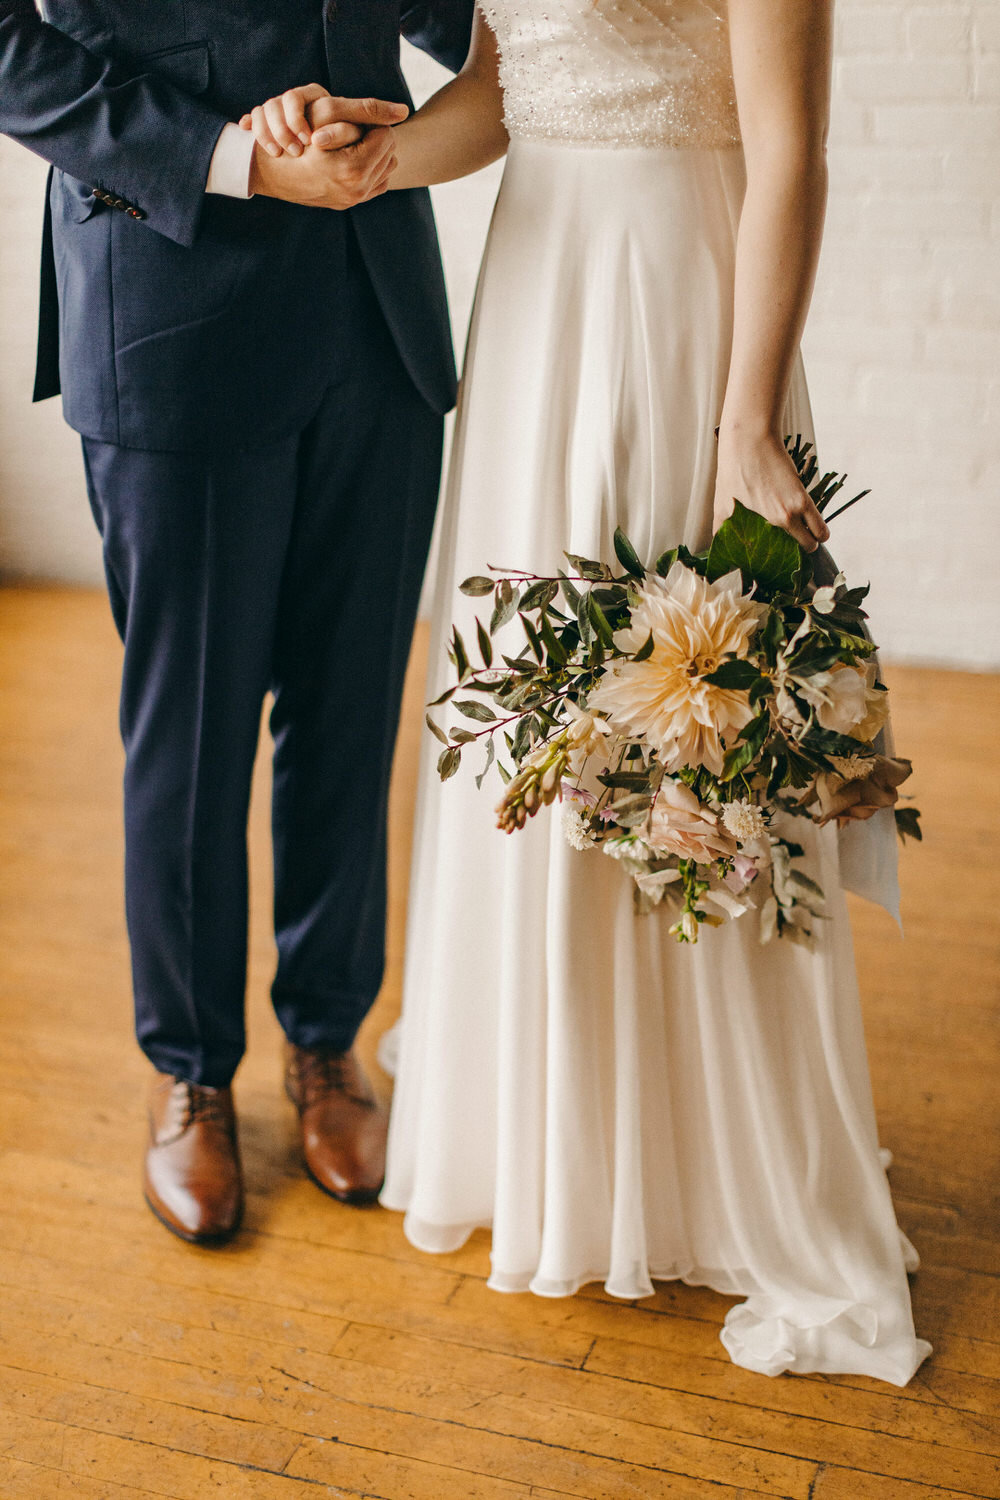 burroughes-building-wedding-toronto-christine-lim-photography-blush-and-bowties-038